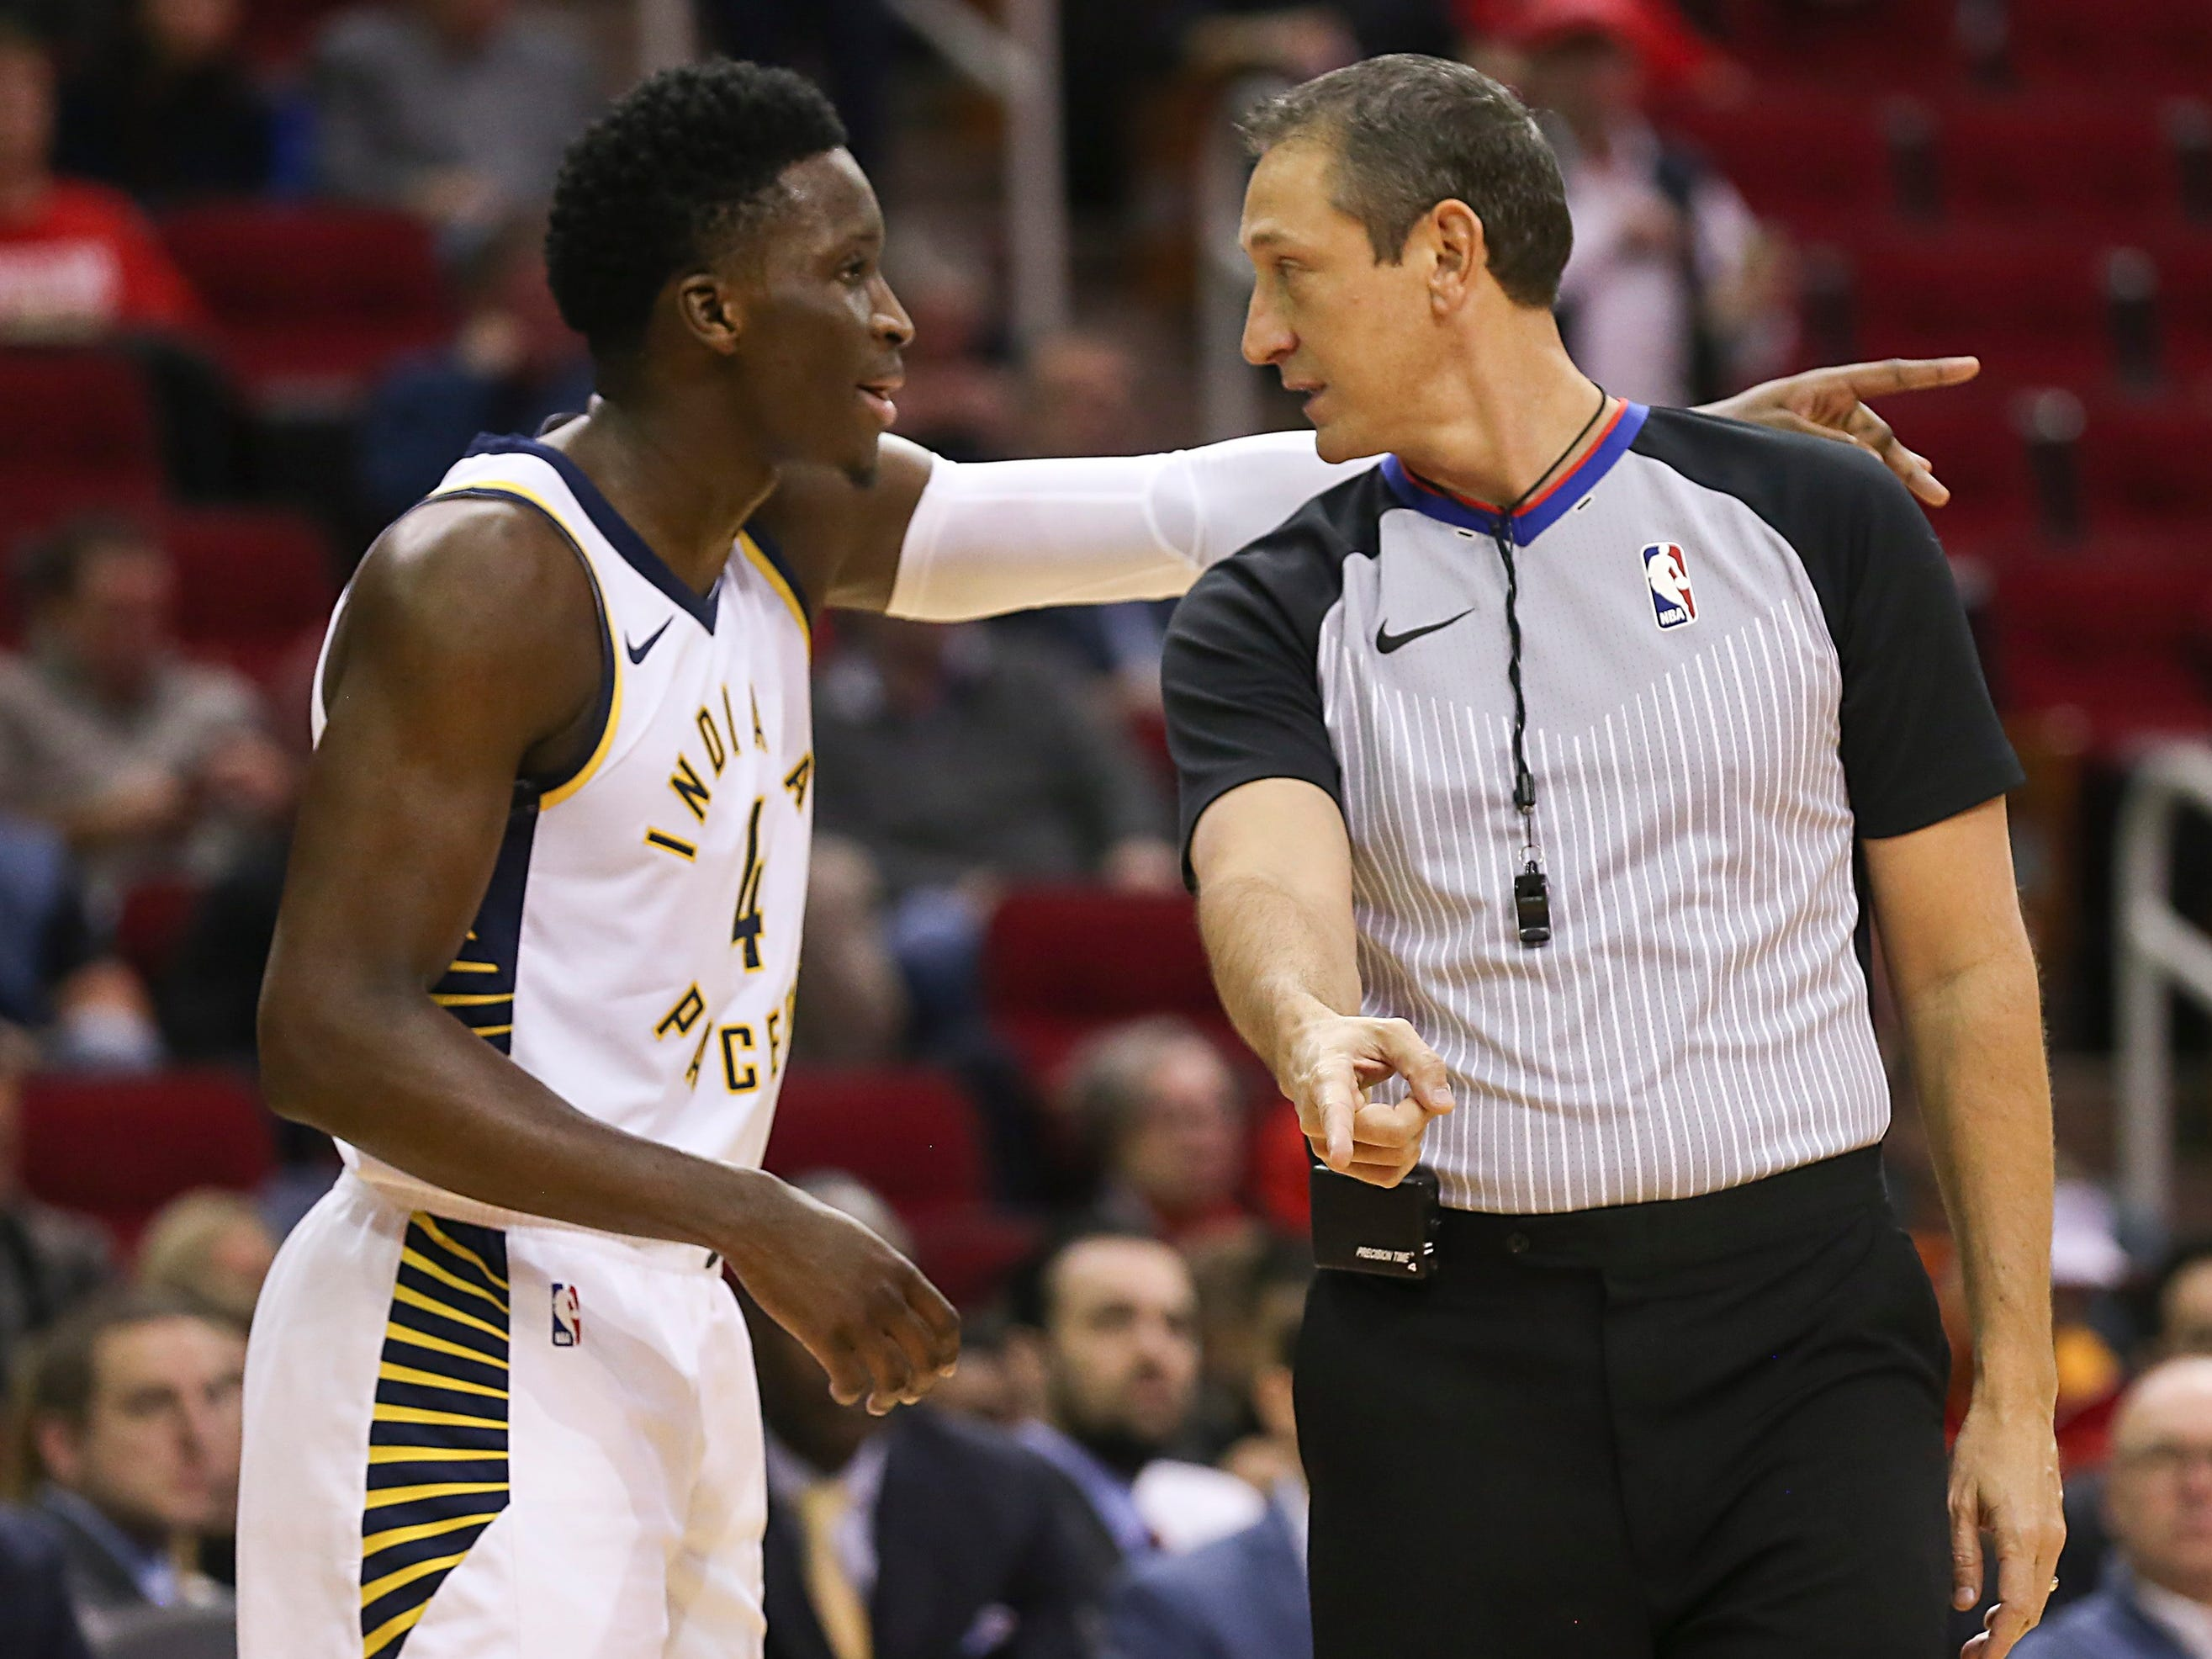 Nov. 11: Pacers guard Victor Oladipo pleads his case with referee Eric Lewis during the first half against the Rockets in Houston.